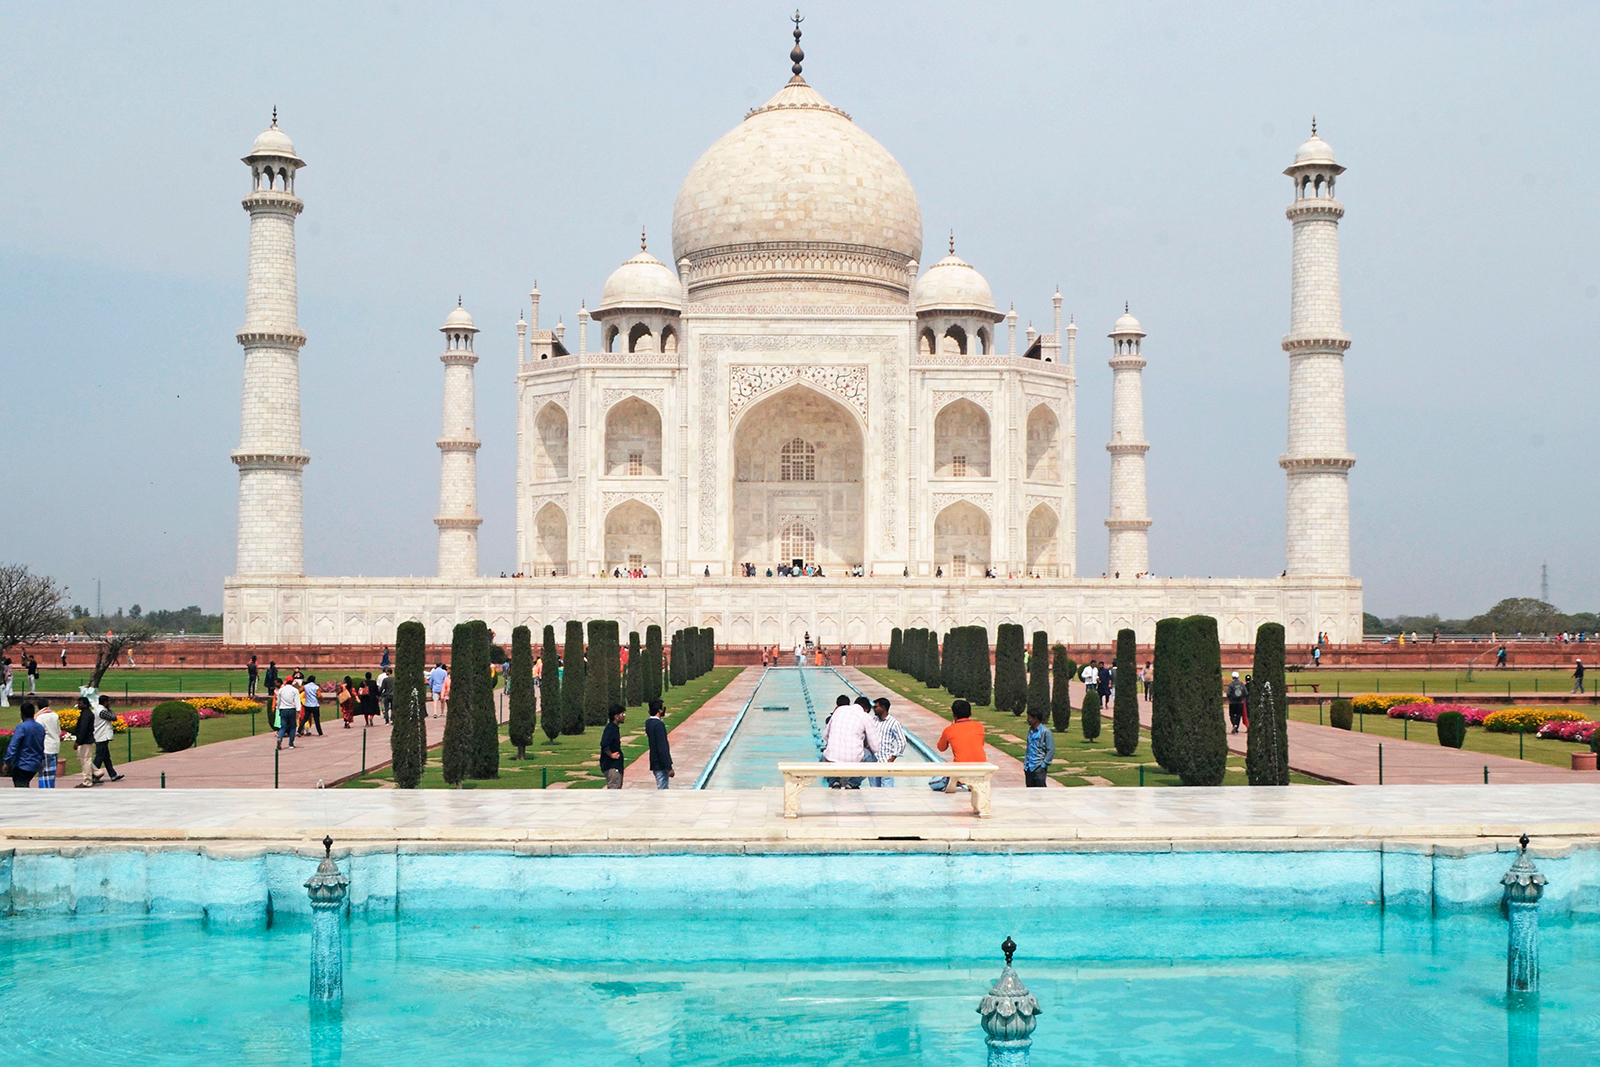 A low number of tourists are seen at Taj Mahal in Agra on March 16.